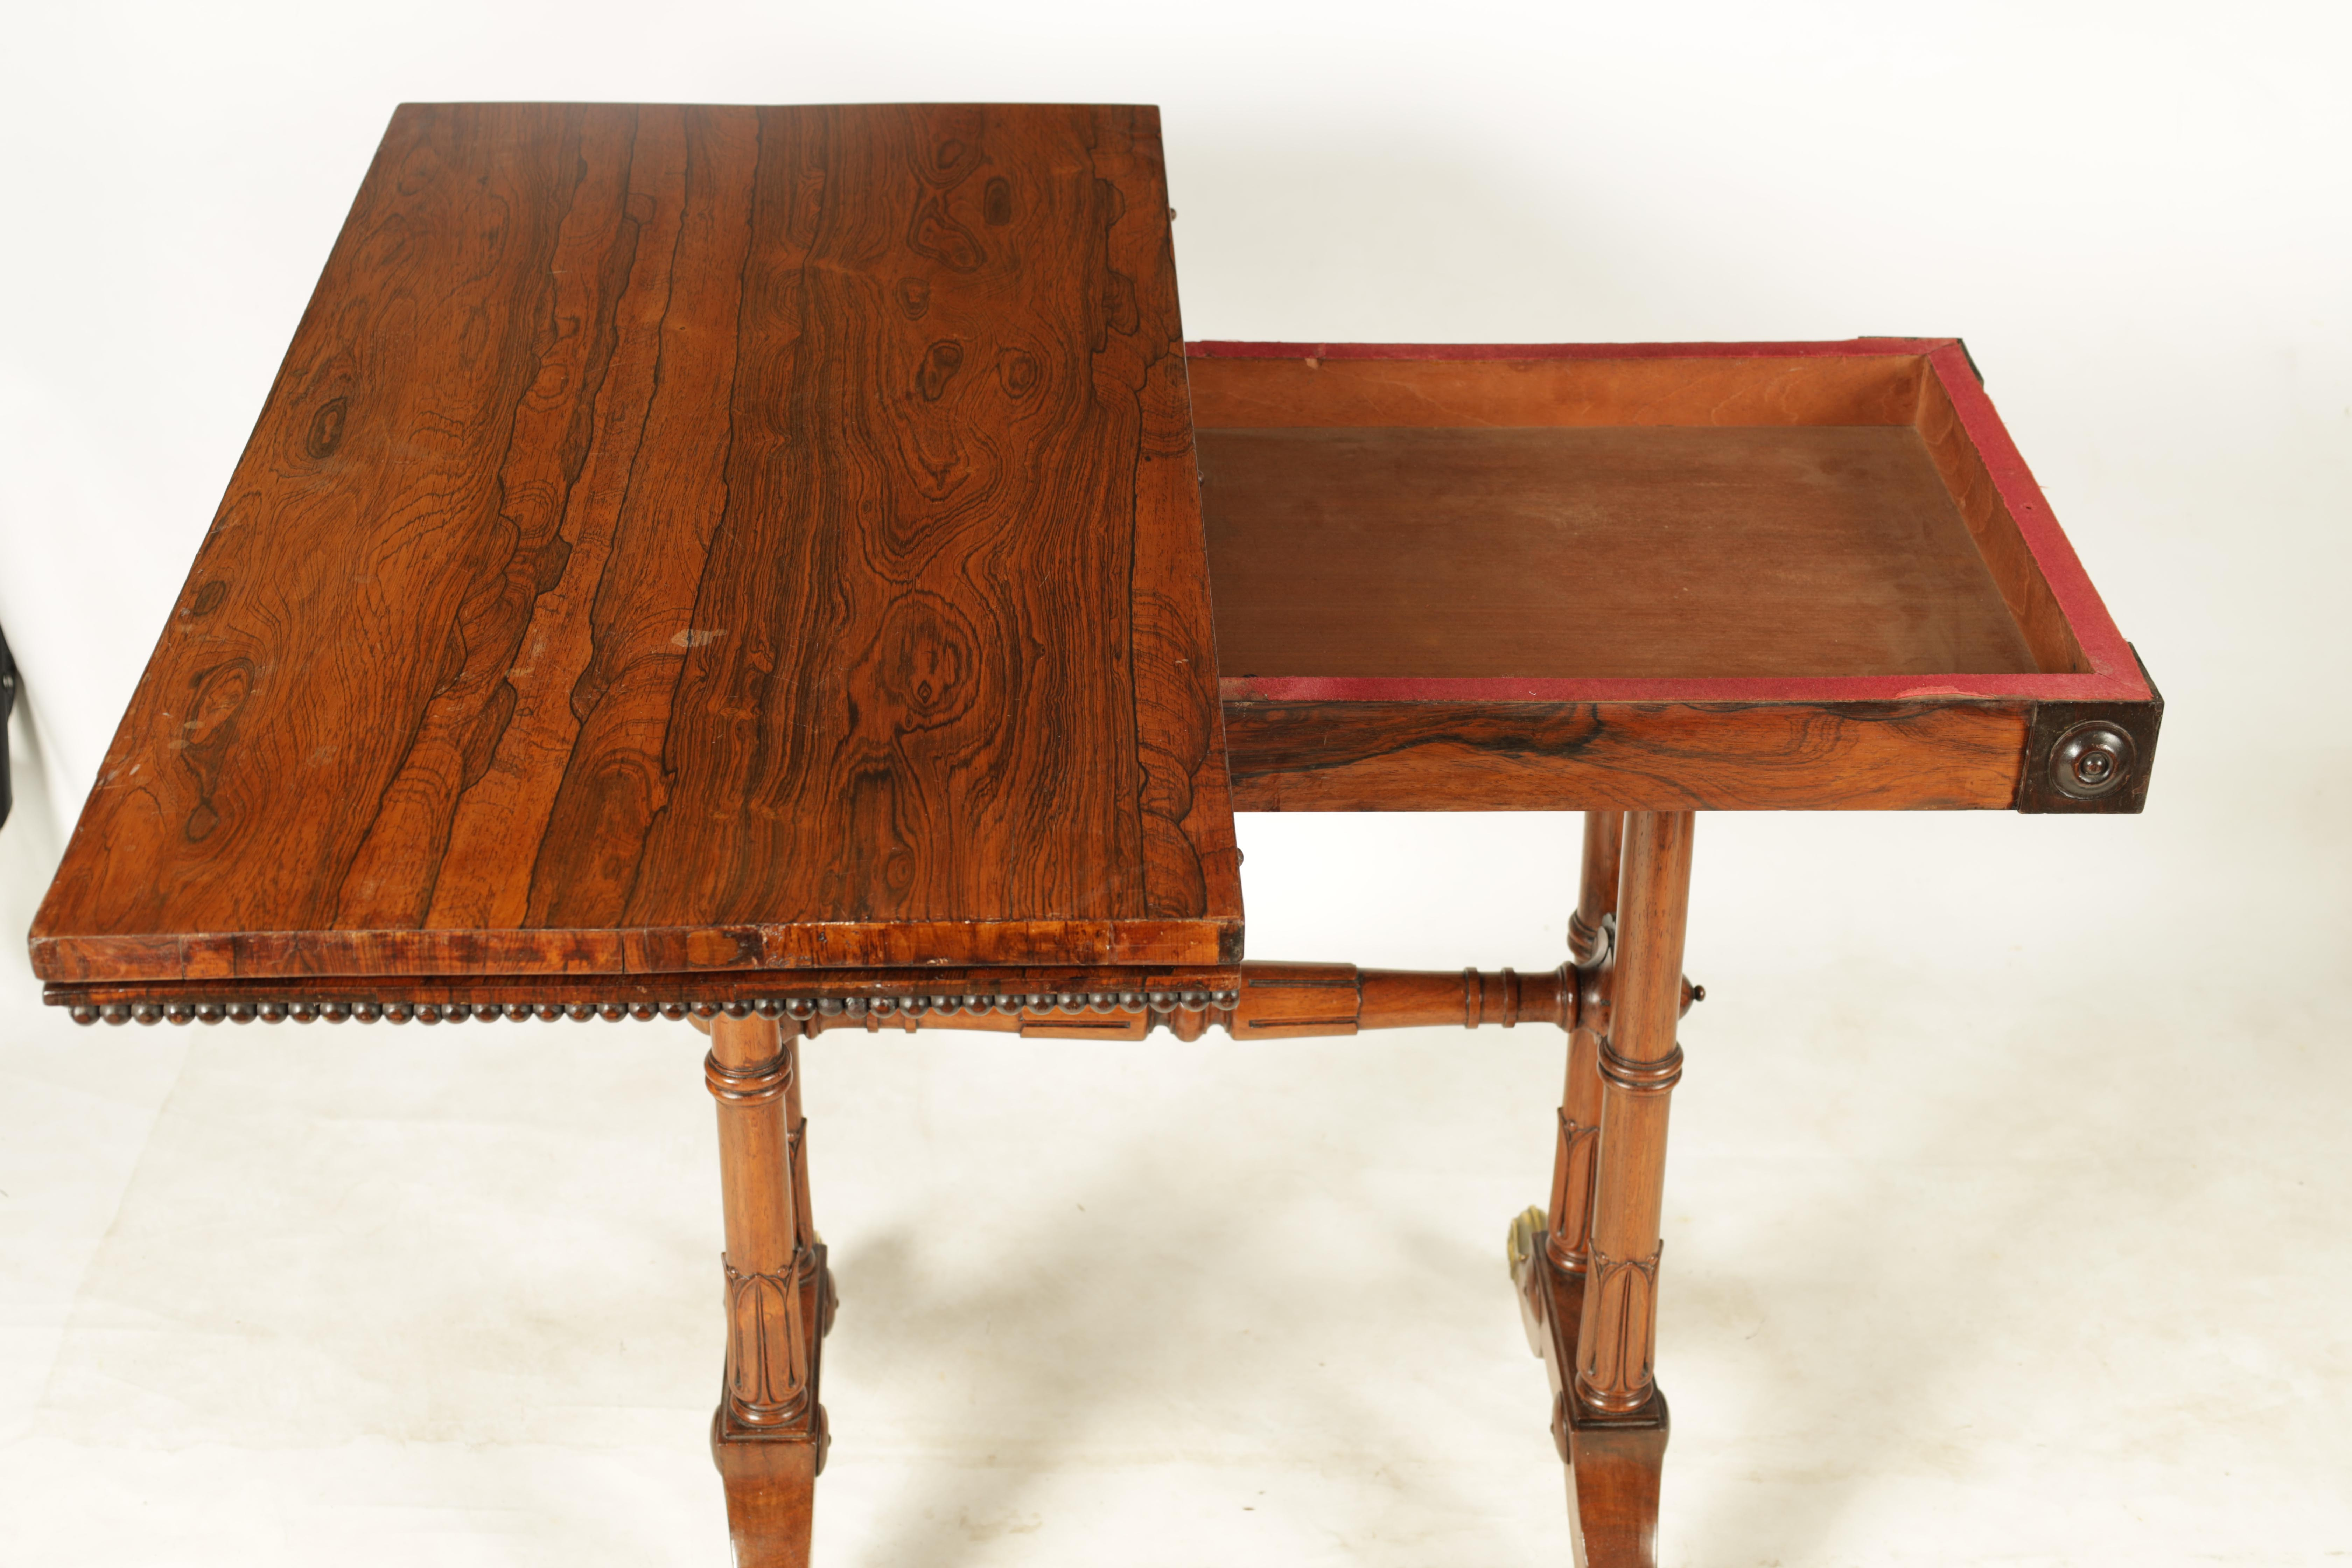 A REGENCY FIGURED ROSEWOOD CARD TABLE IN THE MANNER OF T & G SEDDON with revolving top revealing a - Image 8 of 9